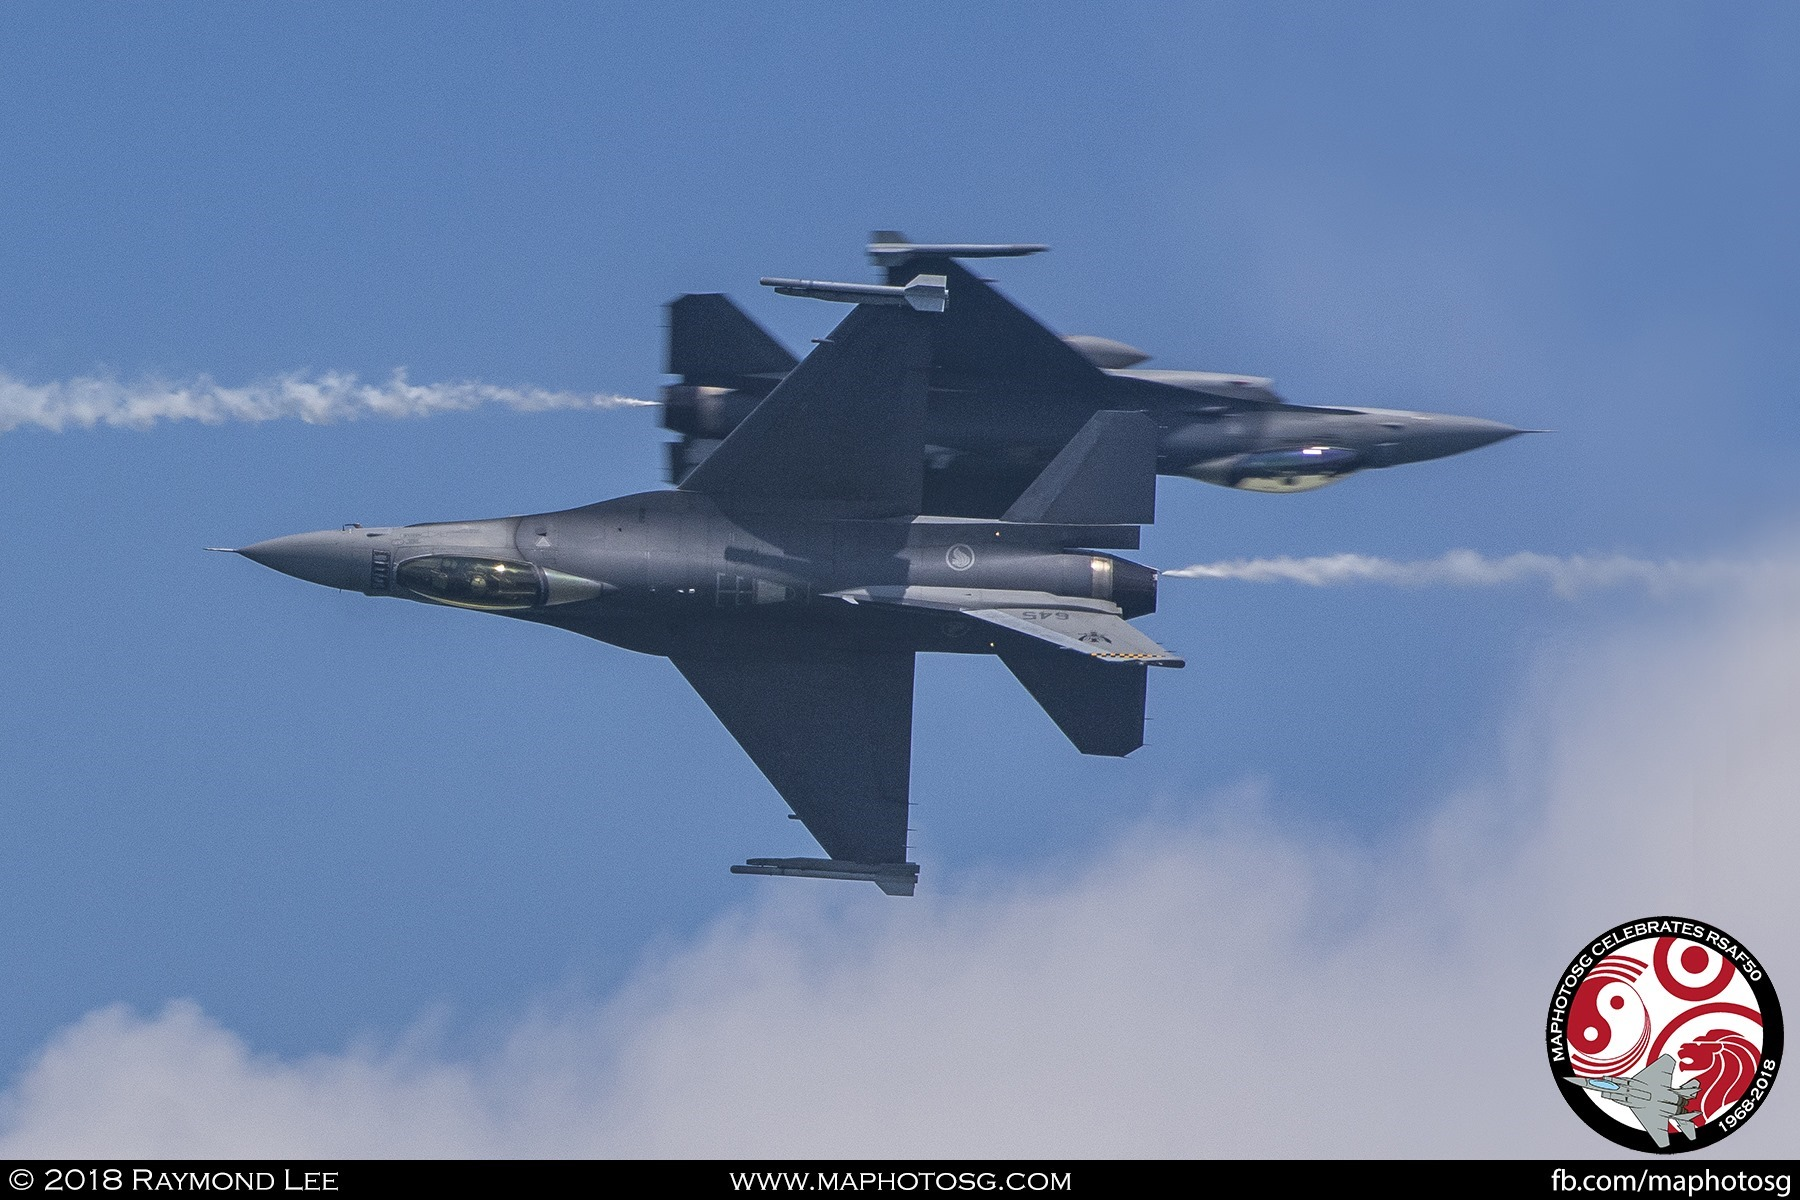 Aileron Roll Hit – The two F-16Cs cross close to each other while executing a simultaneous aileron roll.